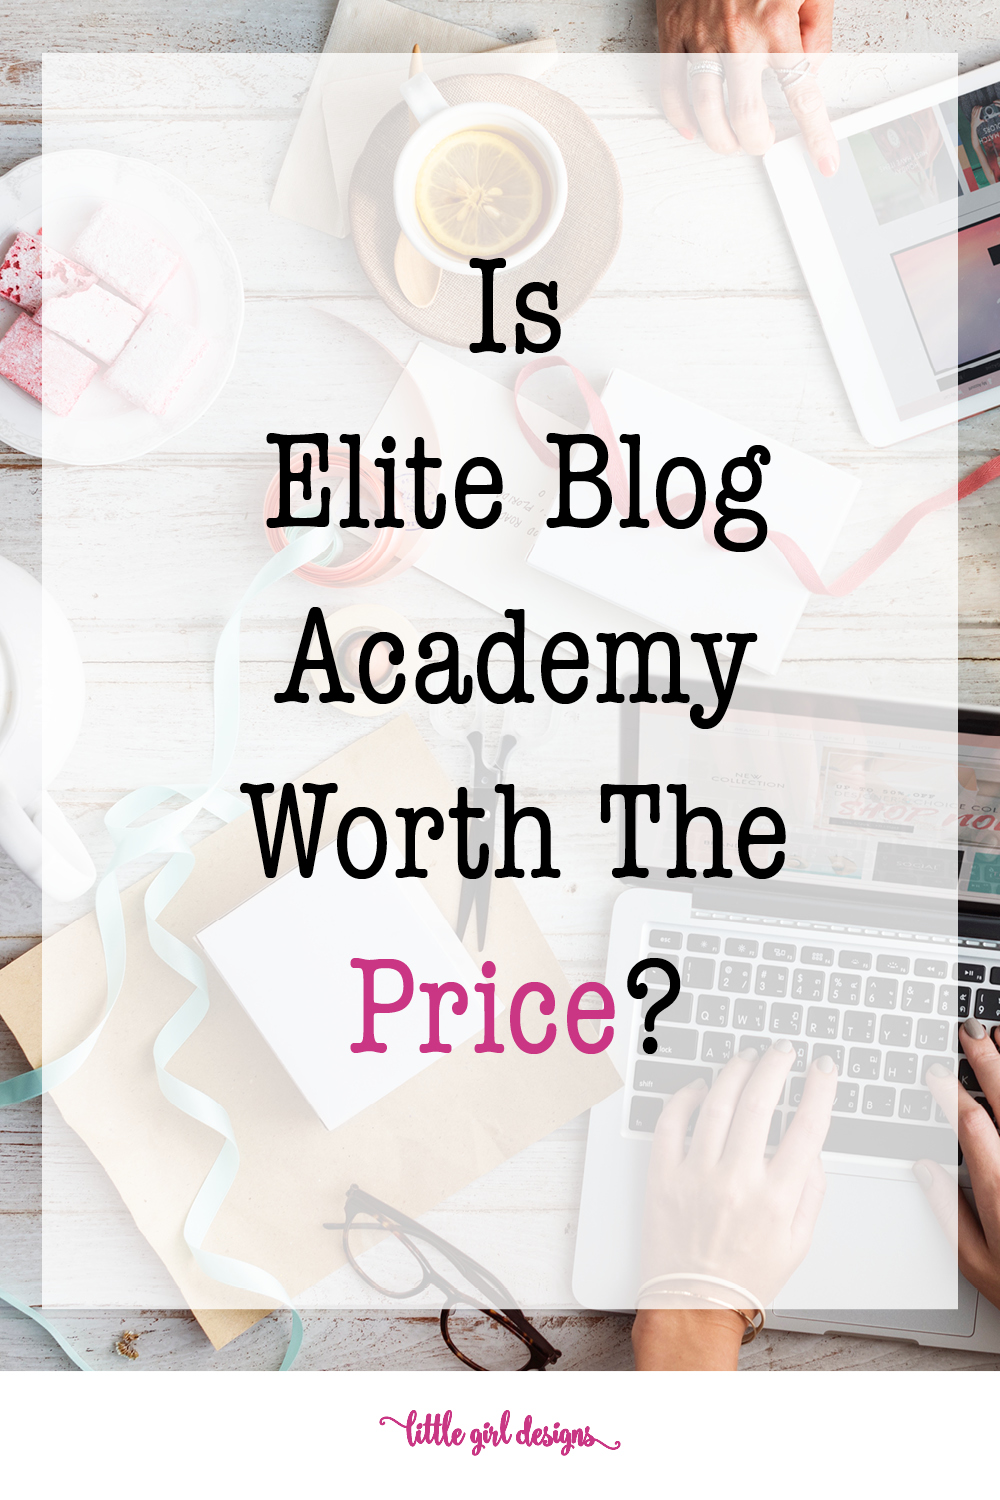 So glad I found this post. I've been researching different online courses so I can make my blog a full-time business, and I didn't know which one was the best. Finally, someone explained the differences! Thank you!